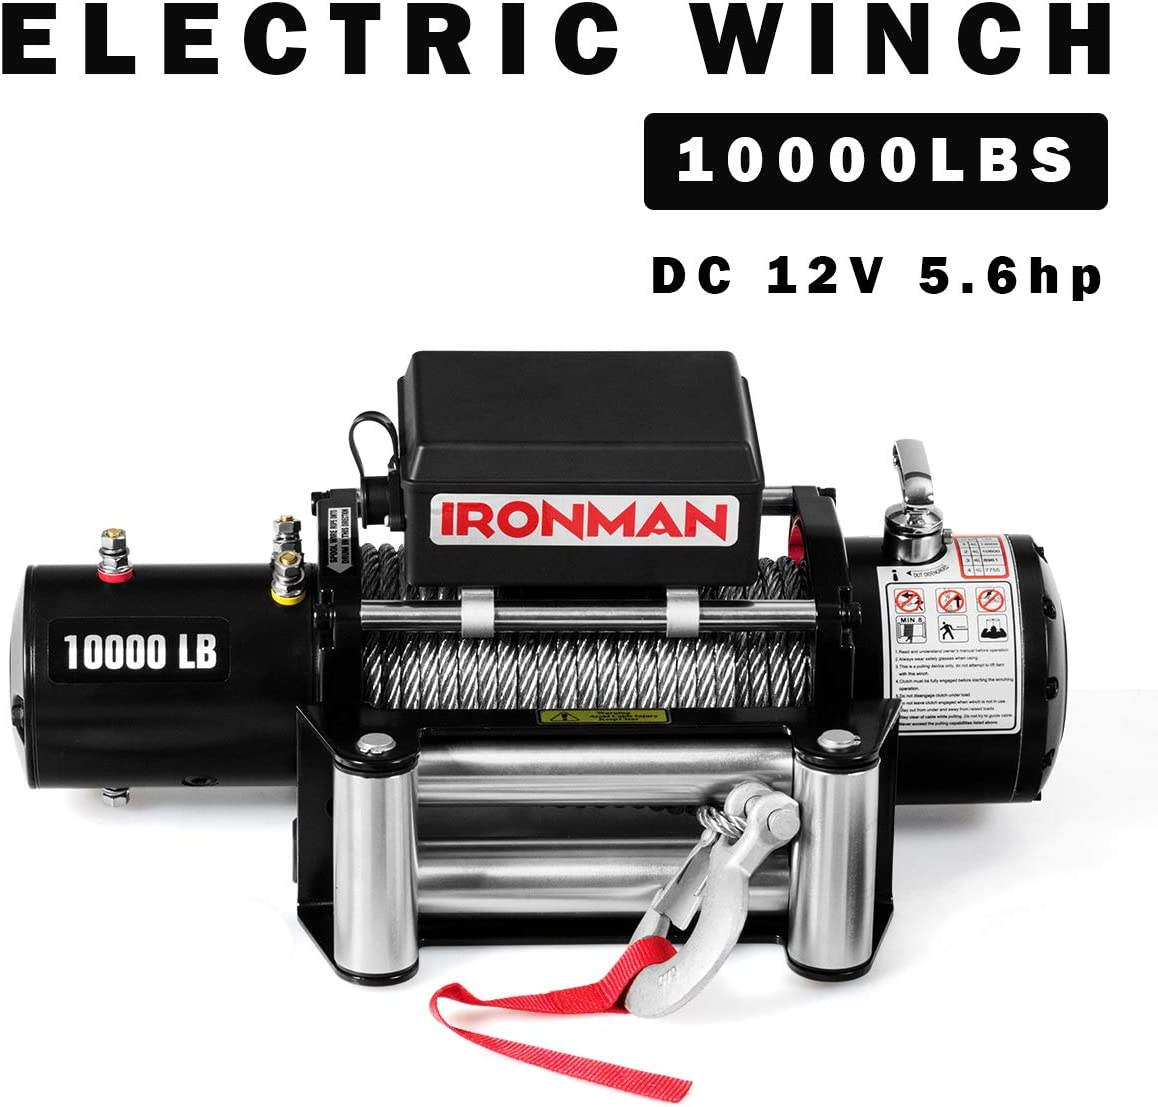 IP67 Waterproof Recovery Winch Utility Winch with Steel Wire Rope Goplus 10000 lbs 12V Electric Winch ATV//UTV Wireless Winch Kit Wireless Remote Control Pure Copper Motor